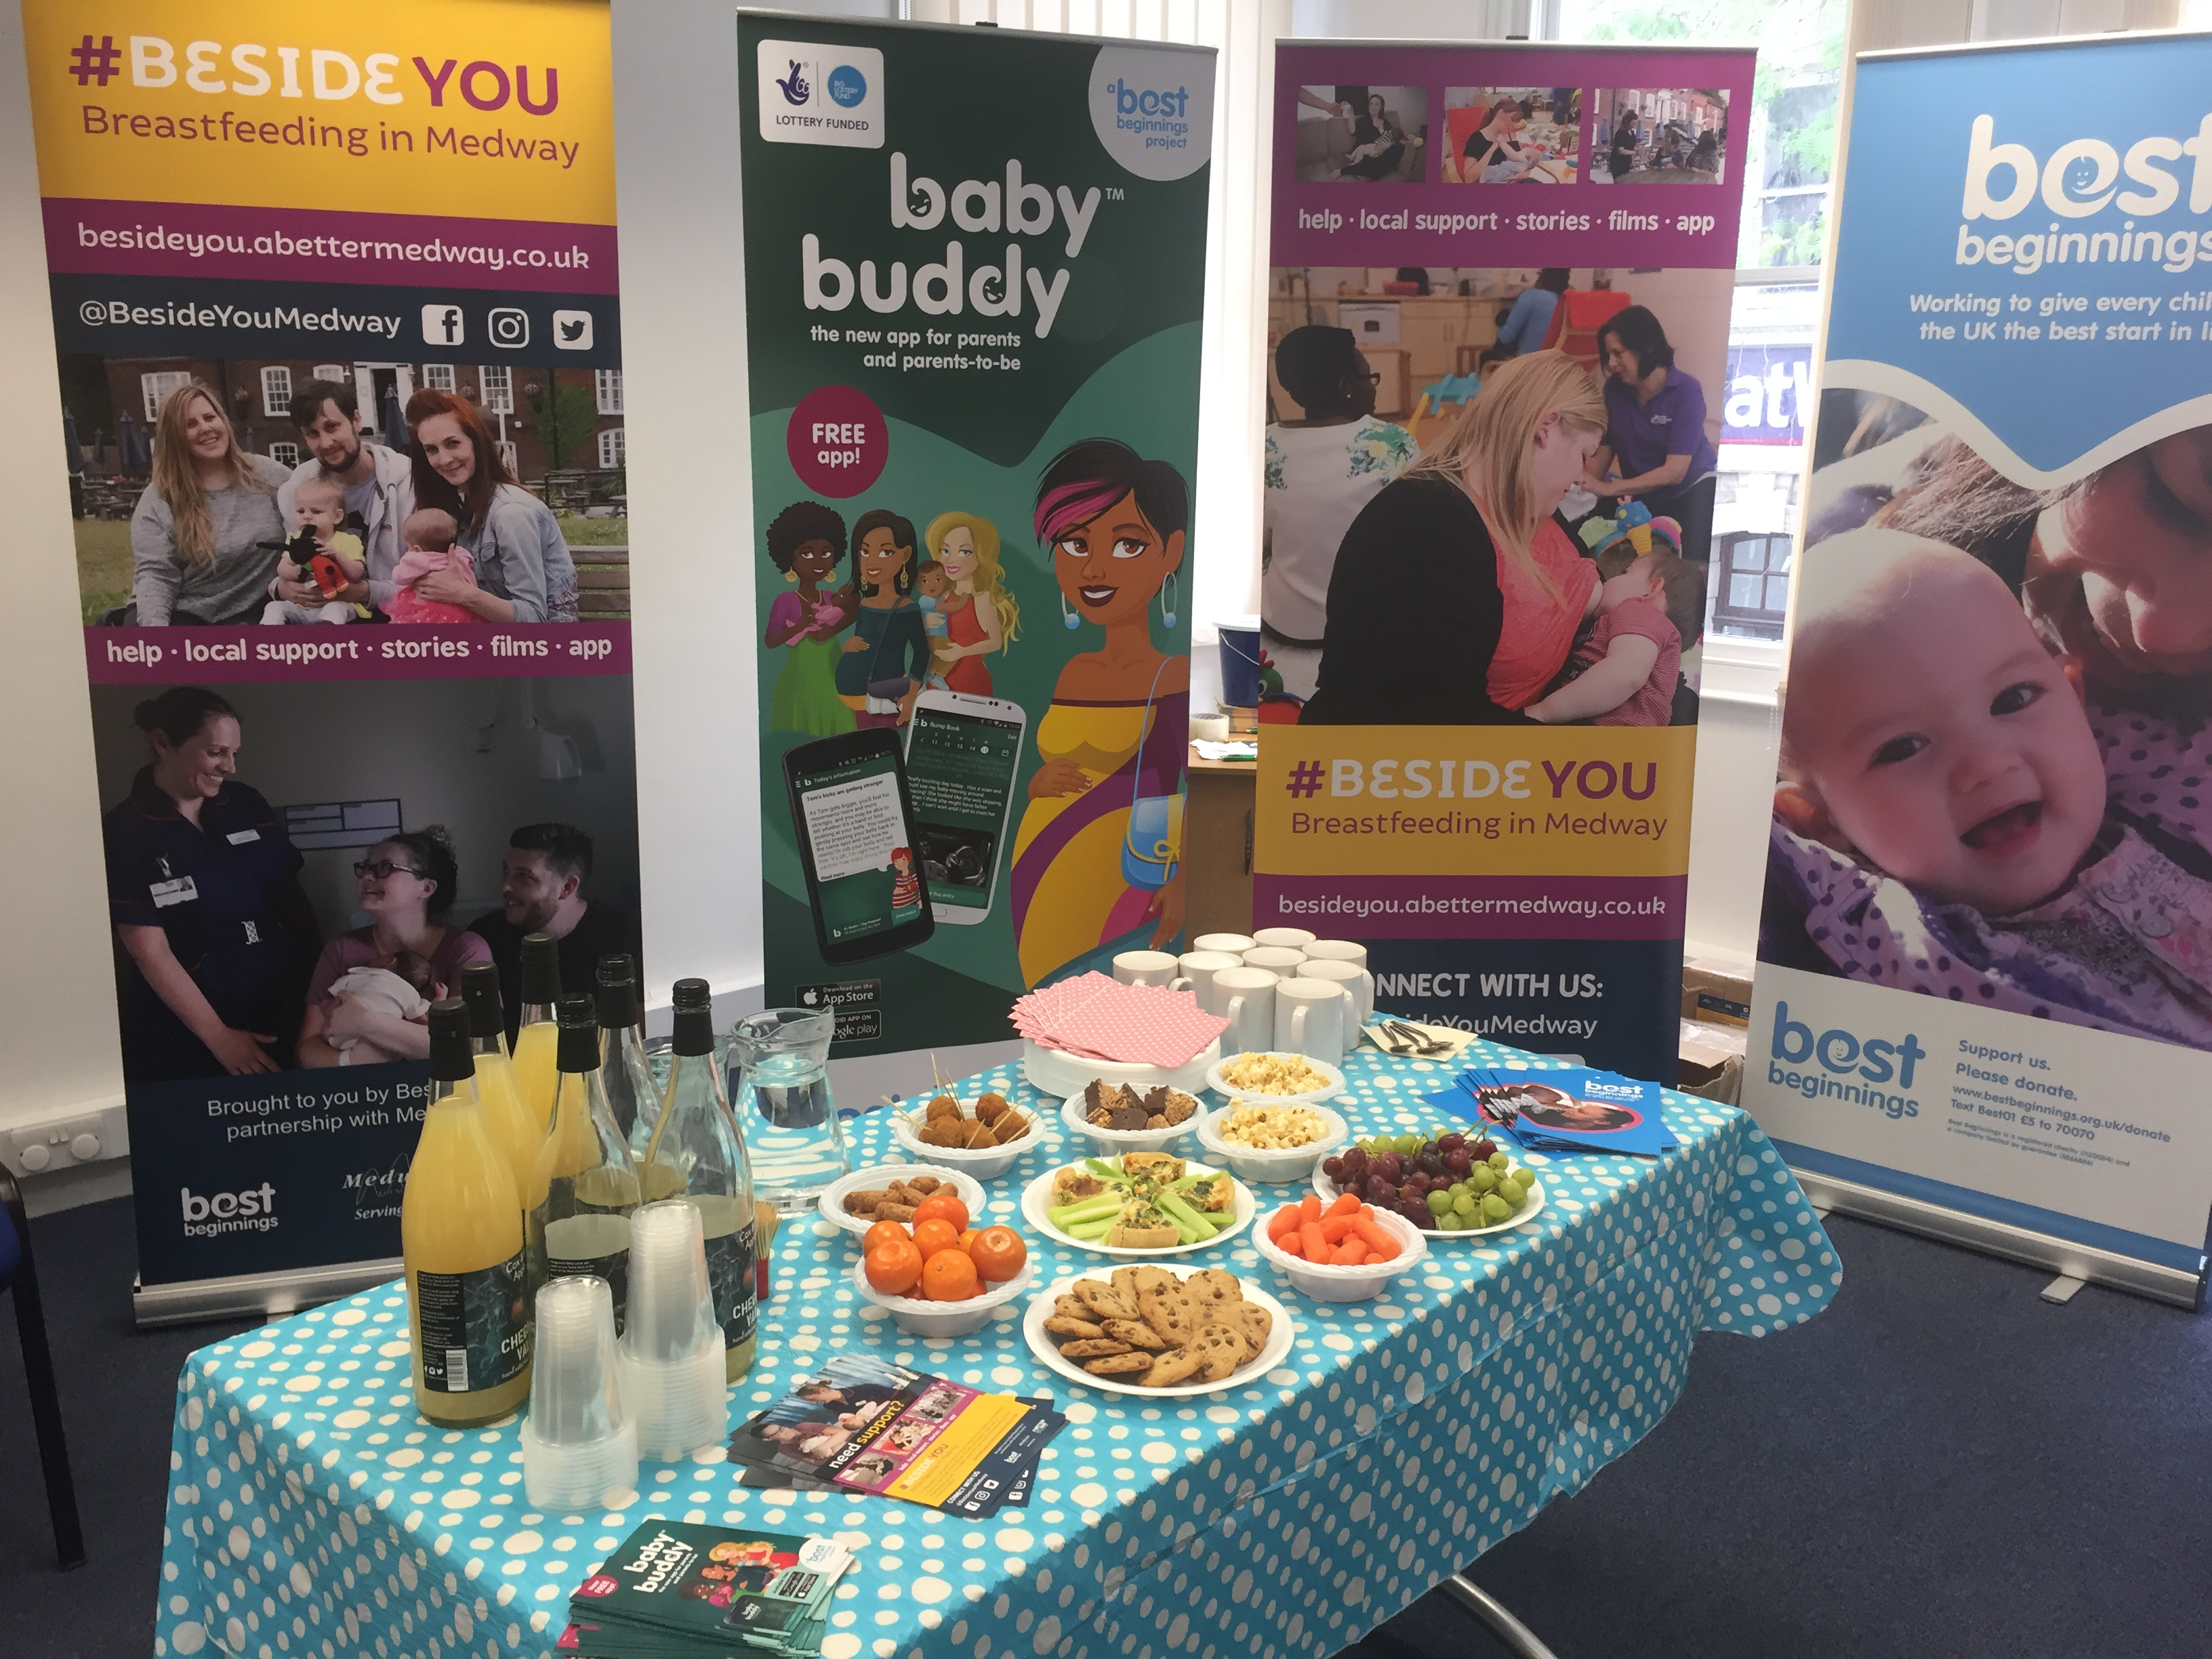 #BesideYou, breastfeeding in Medway, afternoon tea, Baby Buddy, Best Beginnings